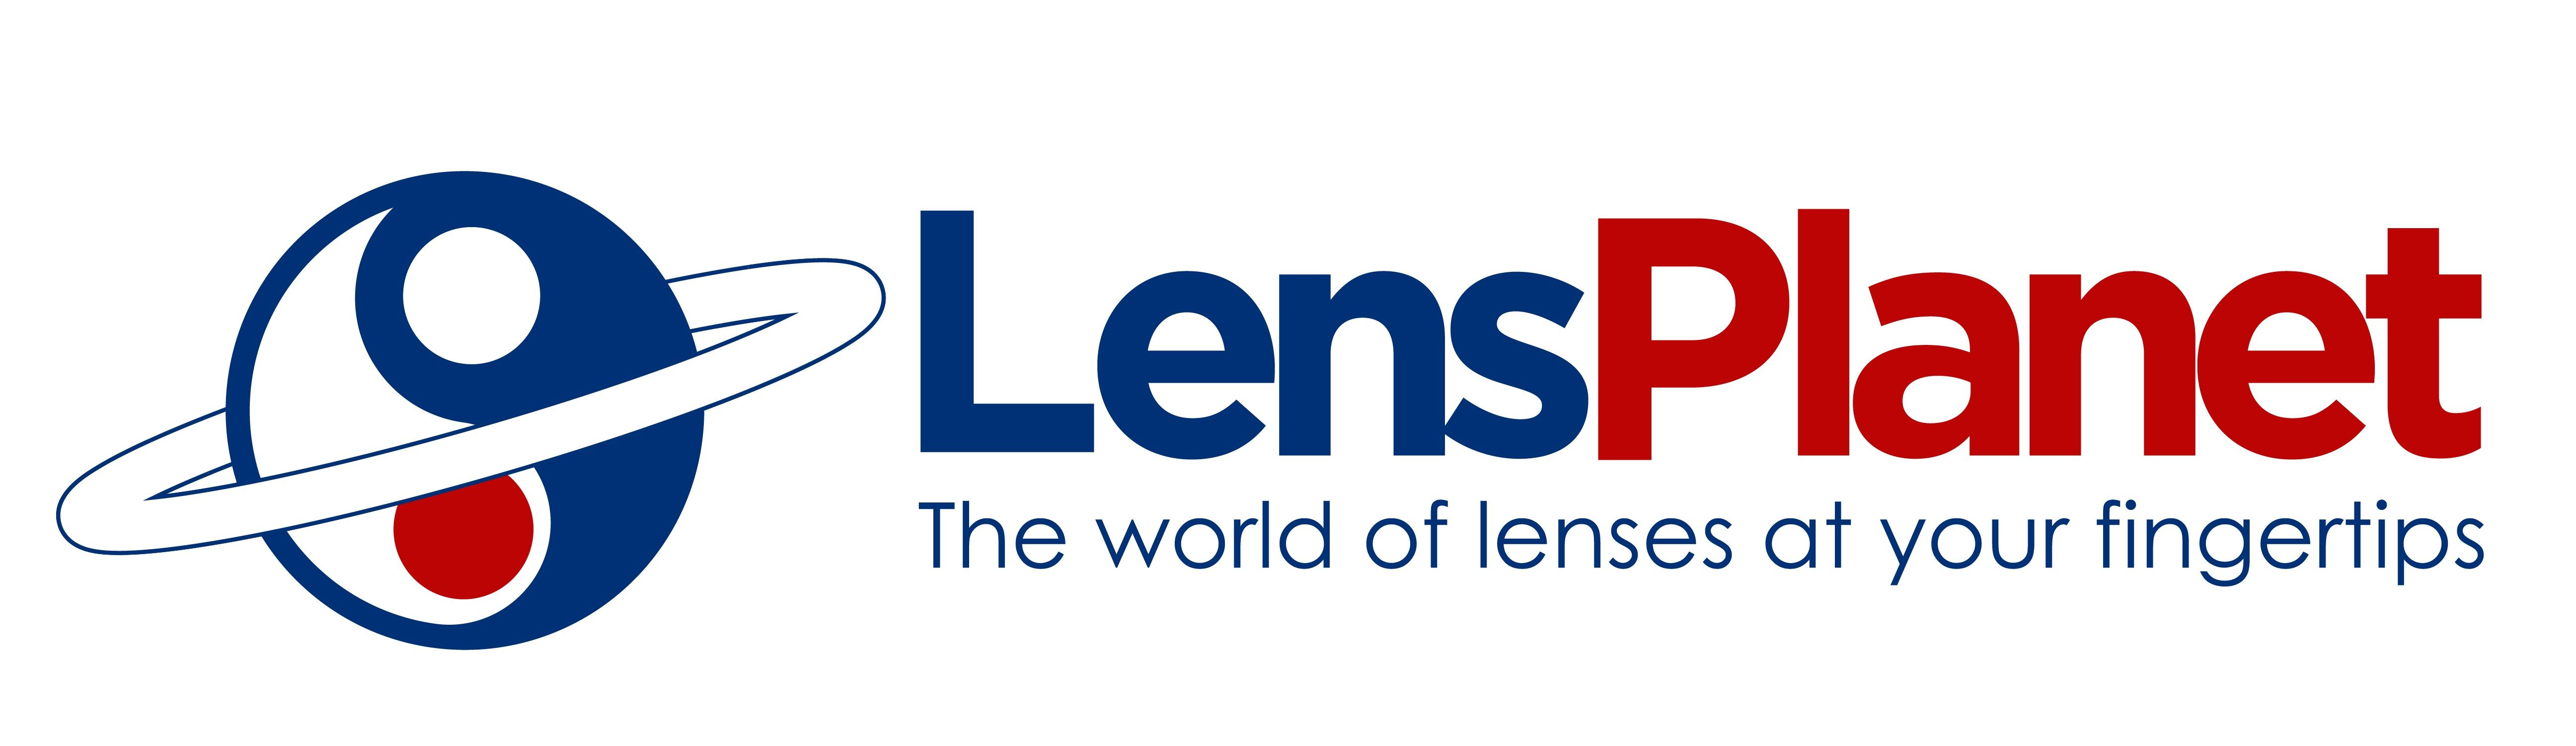 Online contact lens supplier ceases trading after